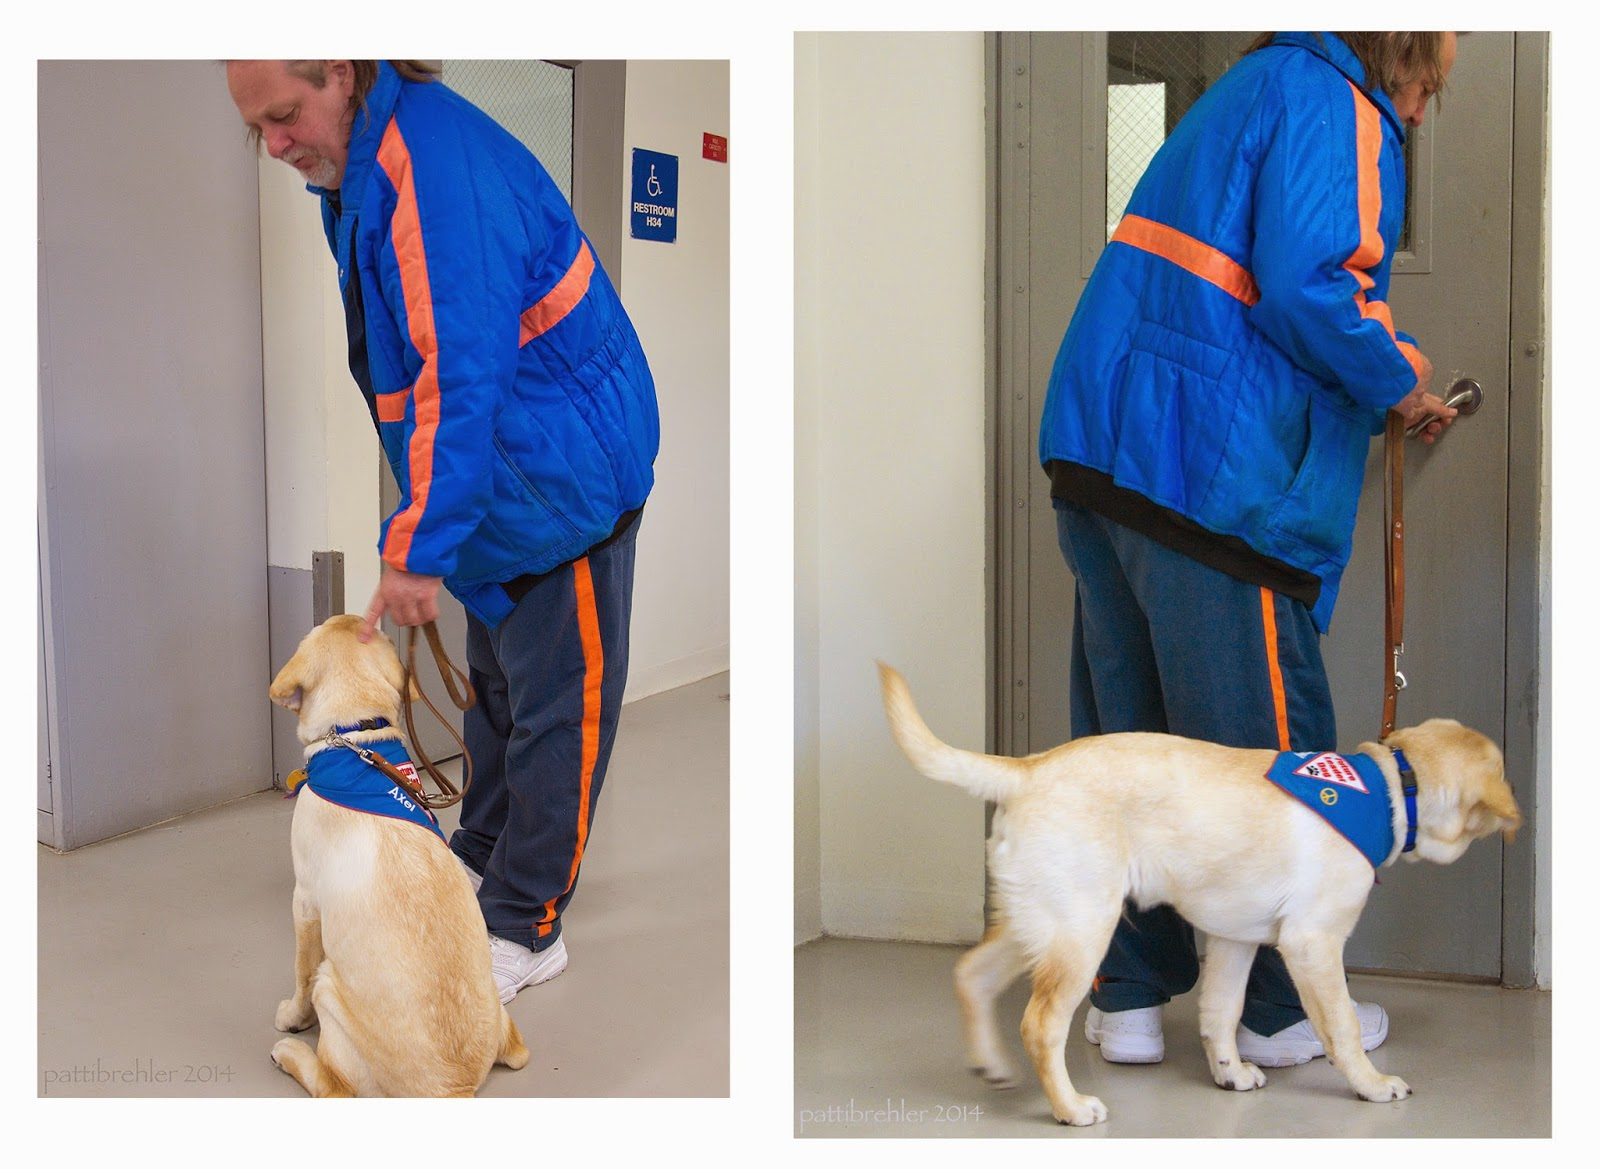 This is two photos in one. On the left, a man wearing a blue and orange striped jacket and the blue prison pants is reaching down with his left hand to a yellow lab puppy. The puppy is sitting with his back to the camera. The man is holding the puppy's brown leather leash in his left hand. In the photo on the right, the same man is approaching a door that has the handle on the right side, the man is just turning the handle. He is holding the leash in his right hand and the yellow lab puppy is walking around the man's back to his right side. The puppy is peering around the man's leg toward the door.